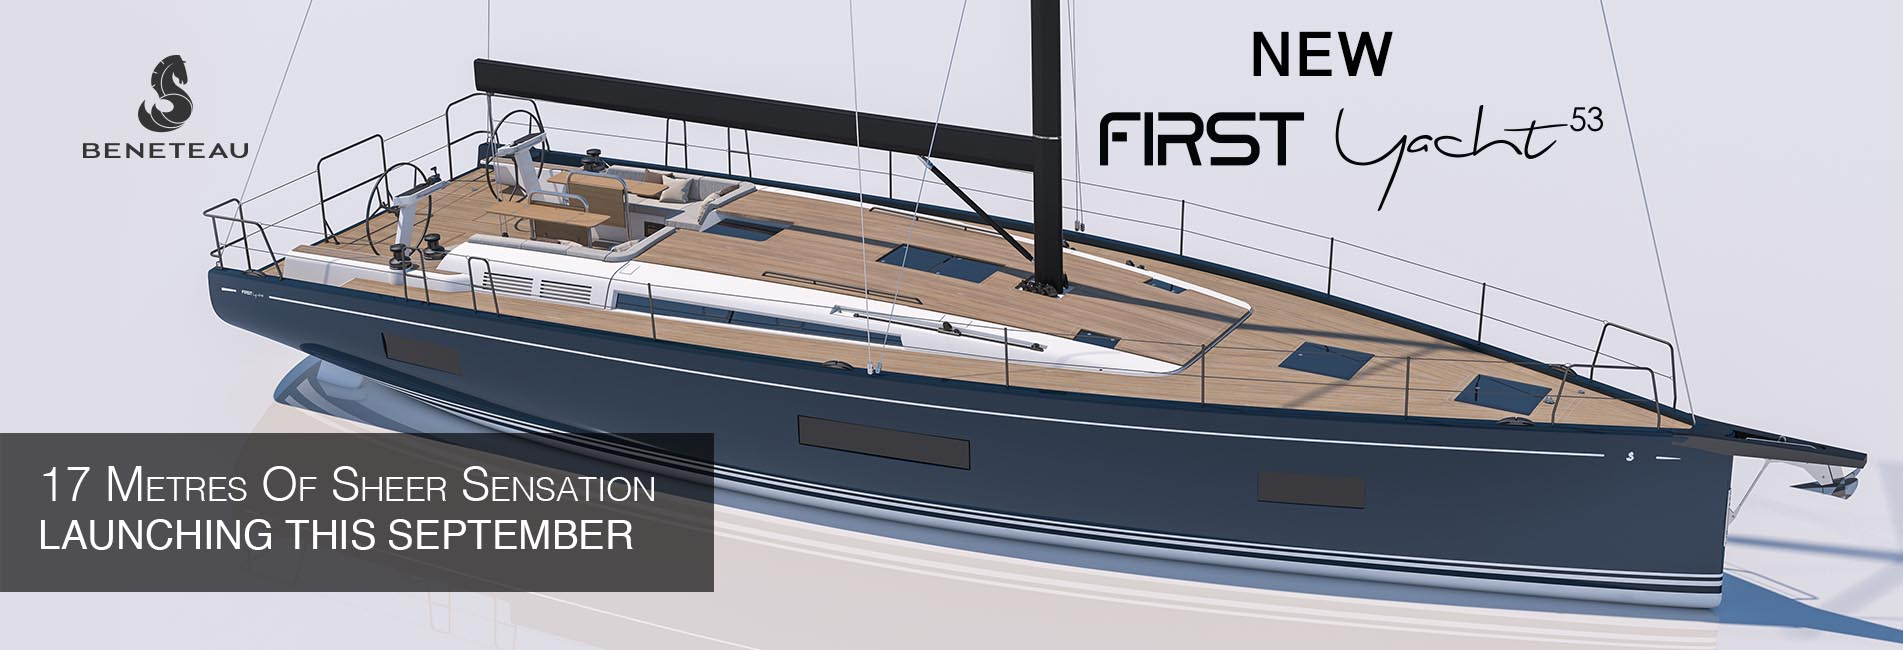 New Beneteau First Yacht 53 2019 Cannes Southampton